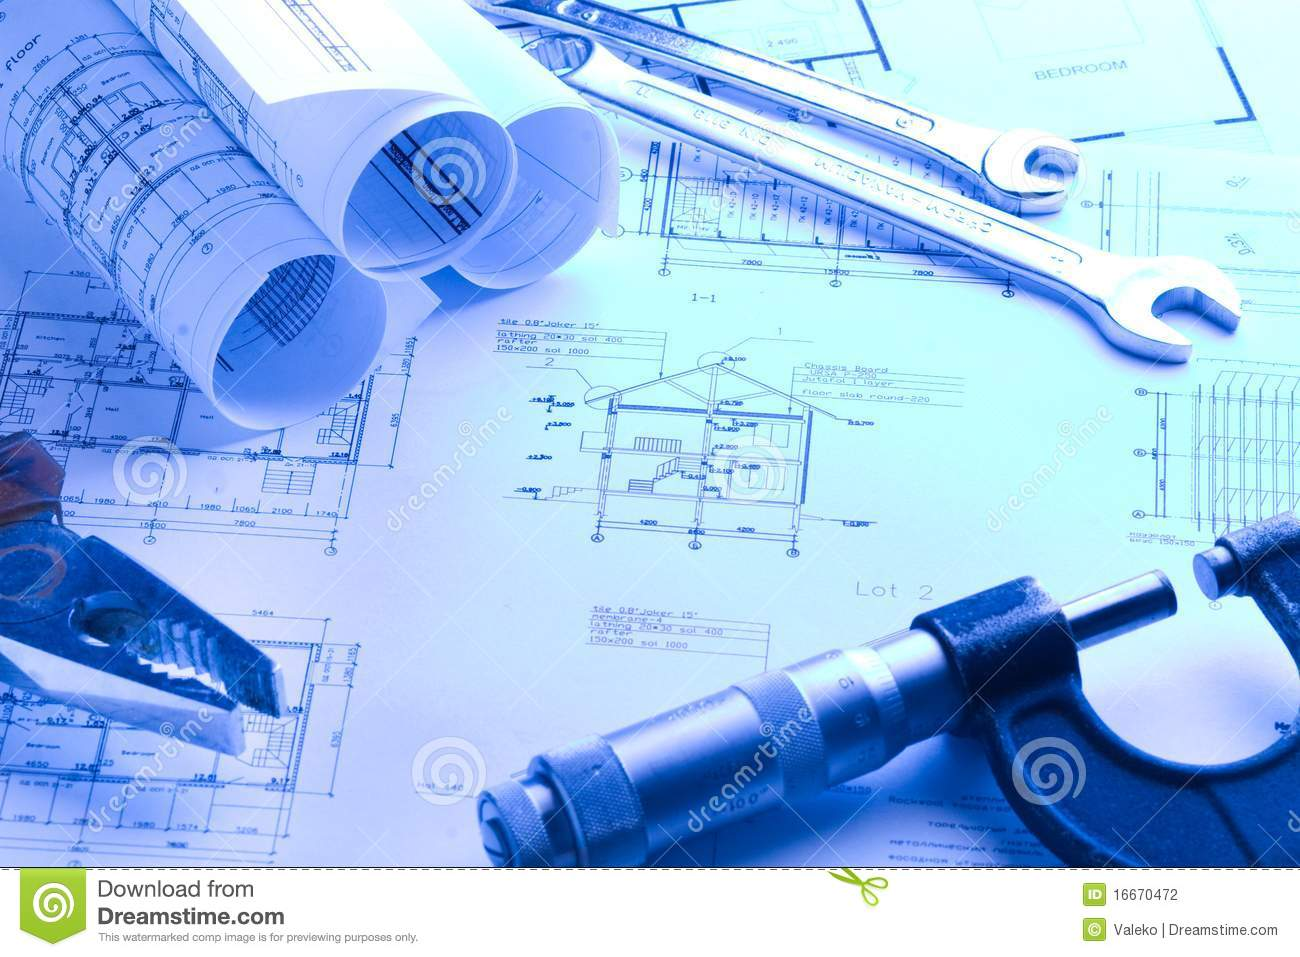 House blueprint with micrometer